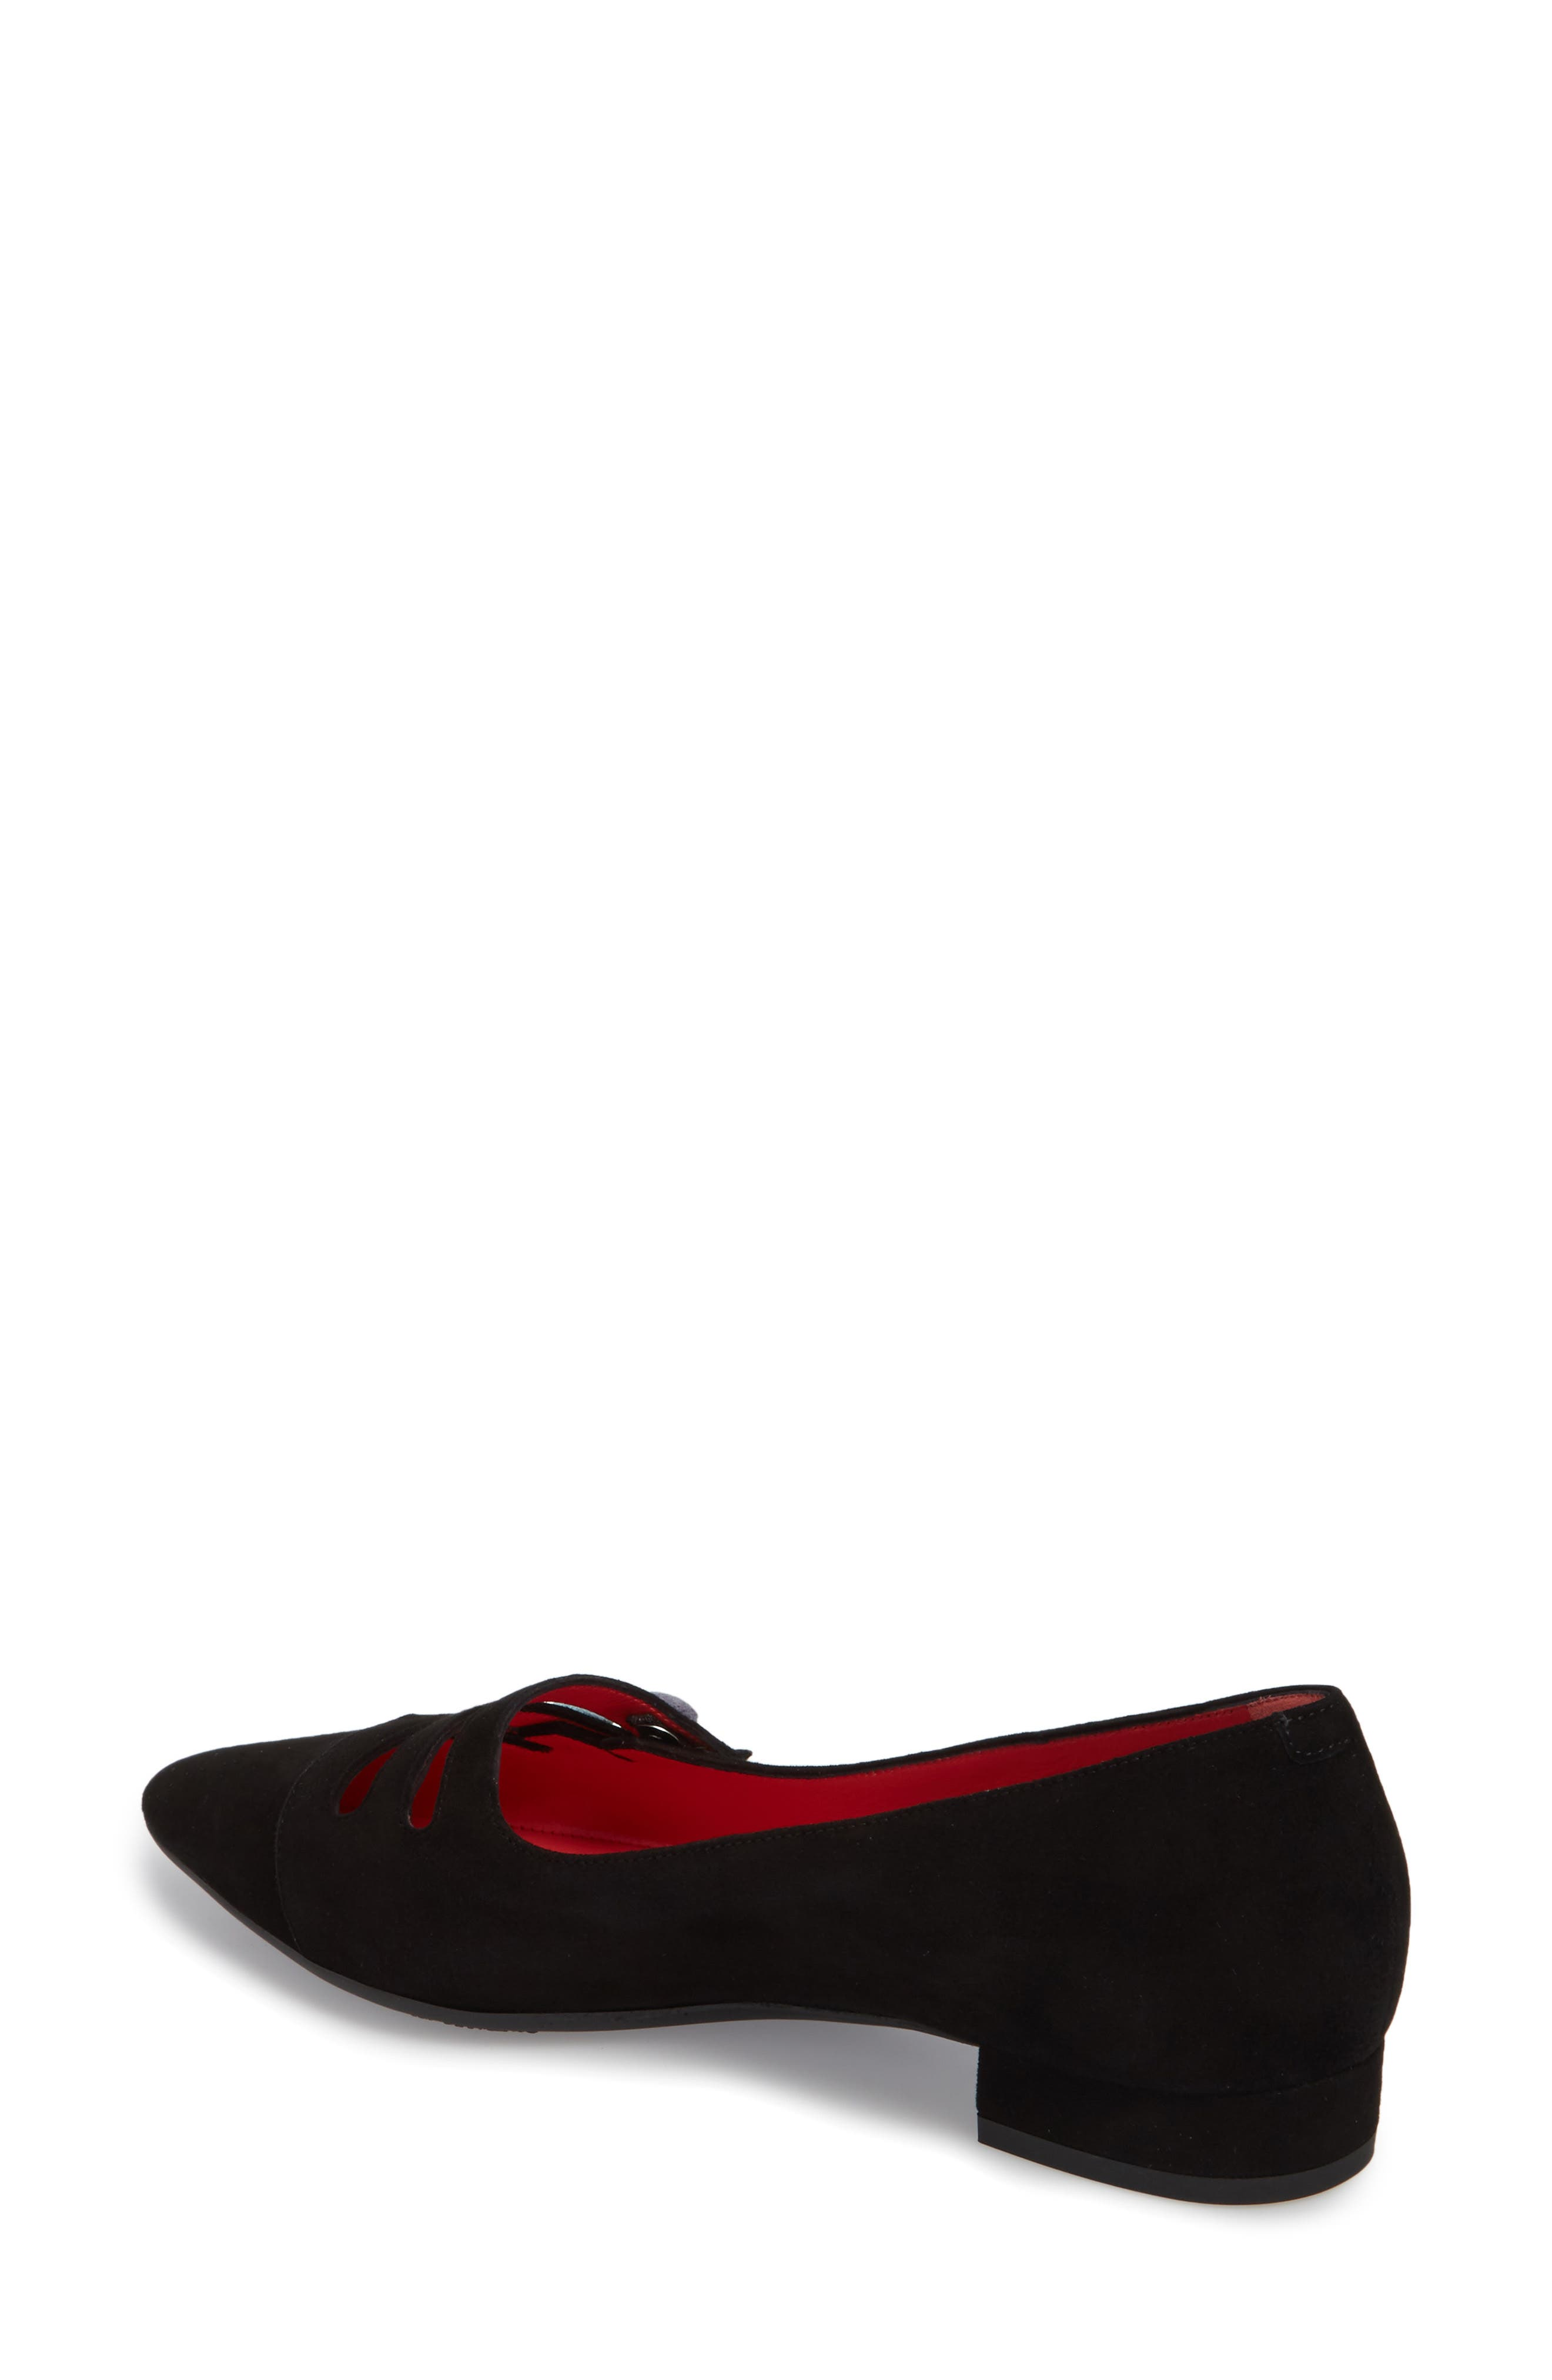 Janet Flat,                             Alternate thumbnail 2, color,                             BLACK LEATHER/ SUEDE